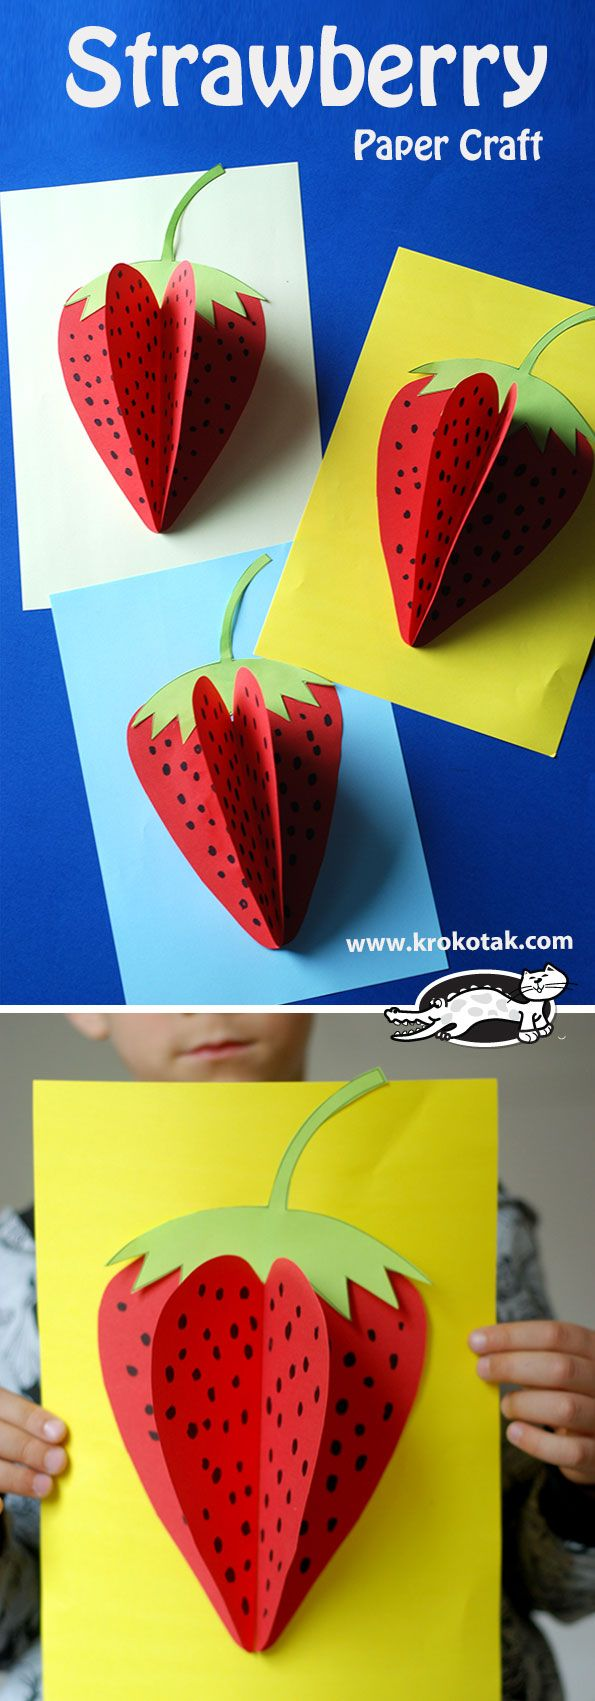 3d paper fruit craft 25 best ideas about strawberry crafts on 3299